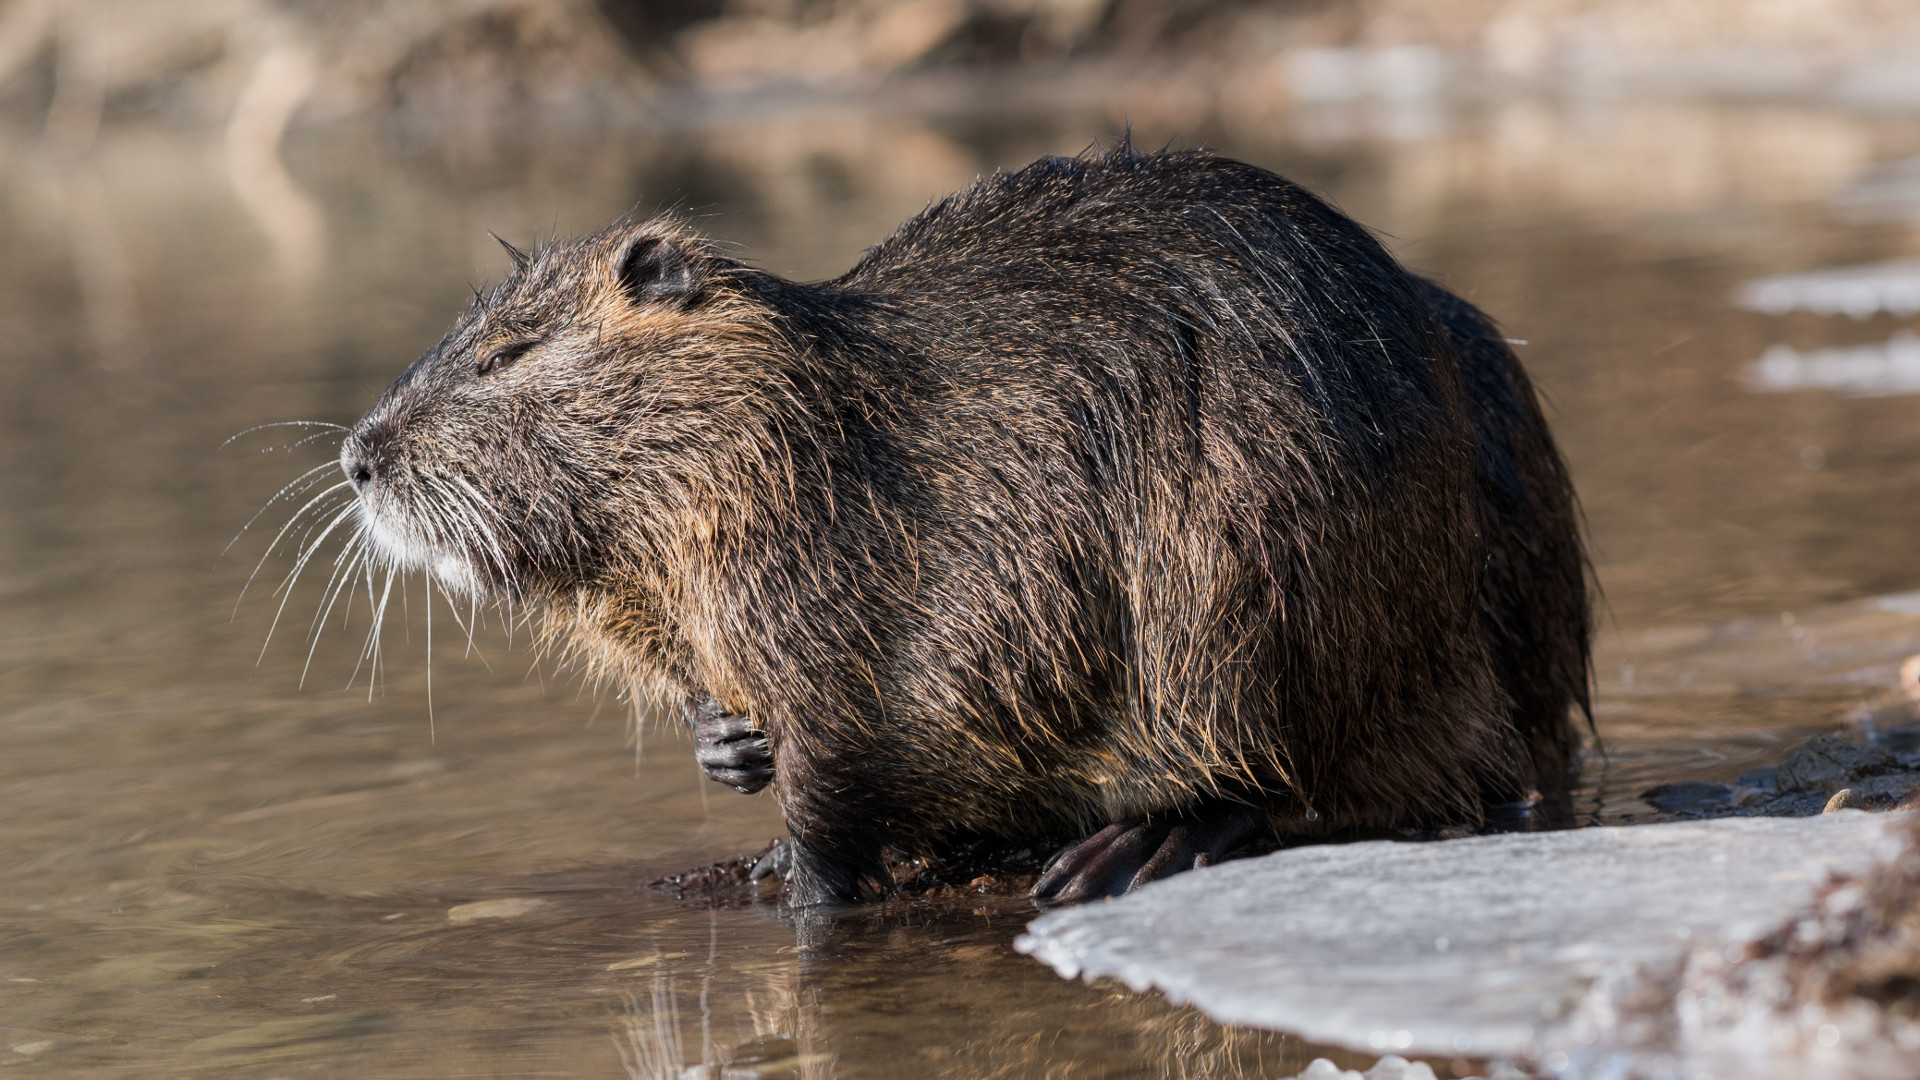 Image of a Coypu in the wild